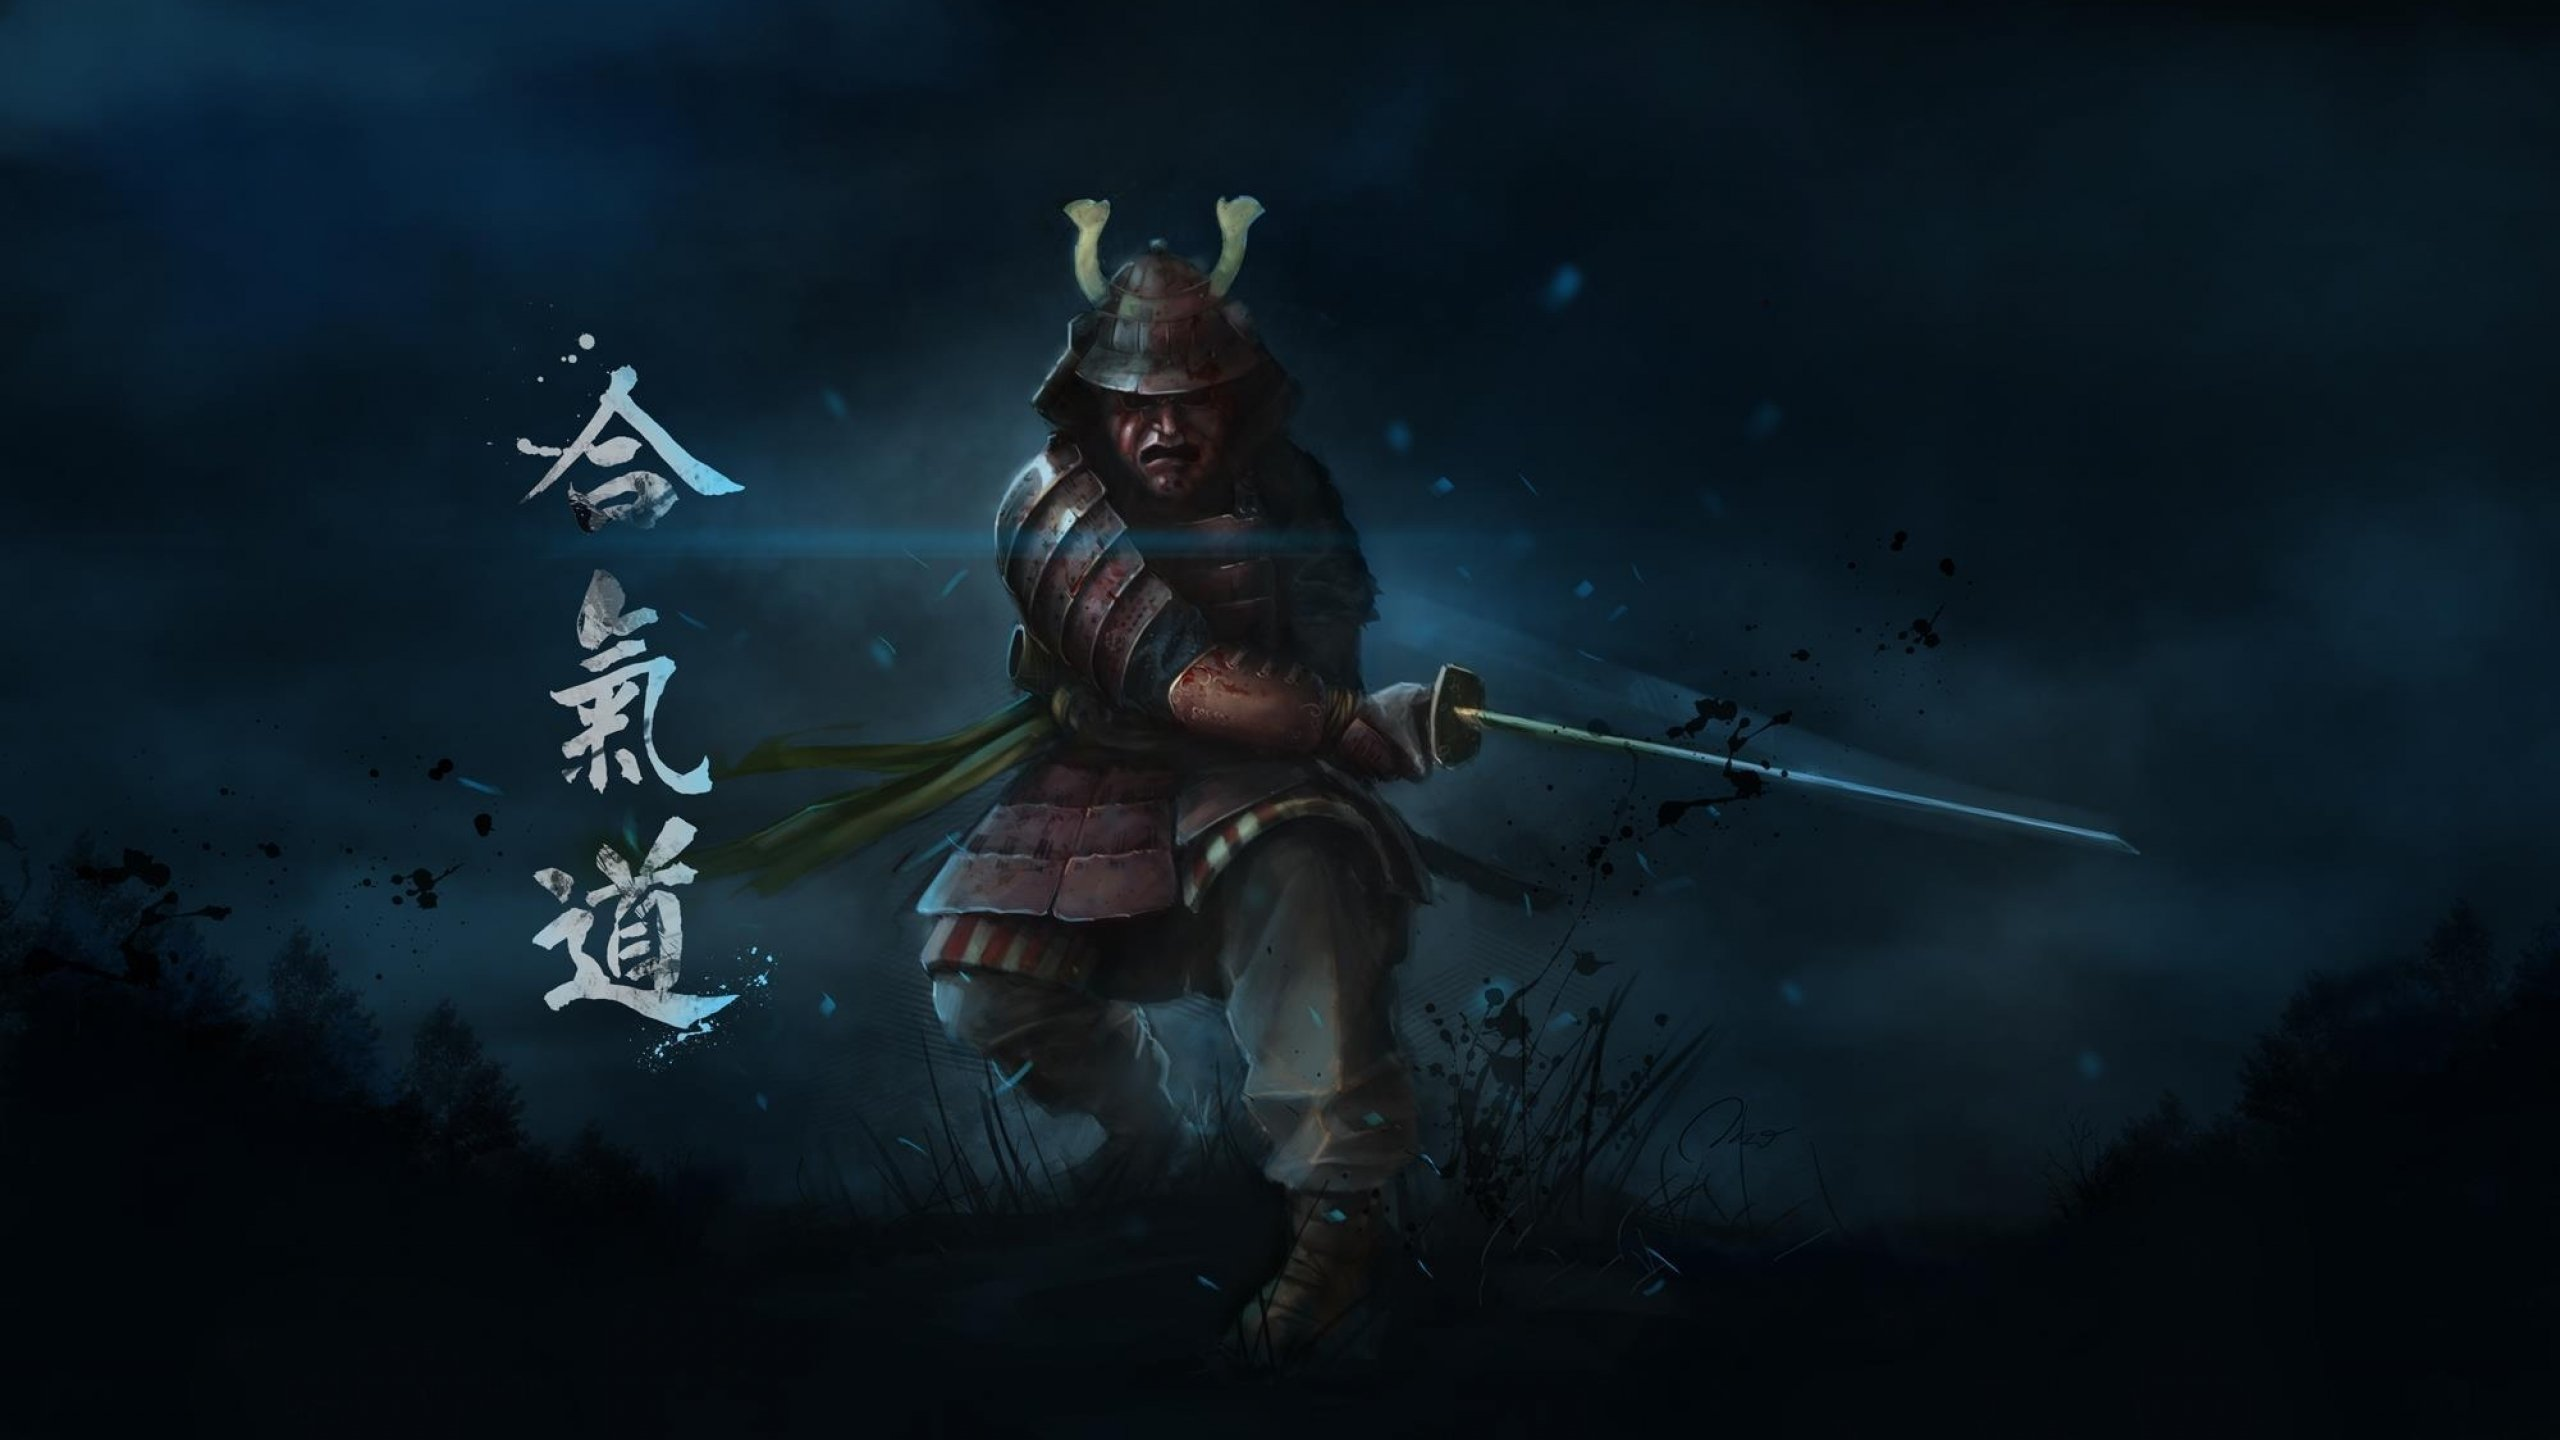 46 Samurai Warrior Wallpaper On Wallpapersafari